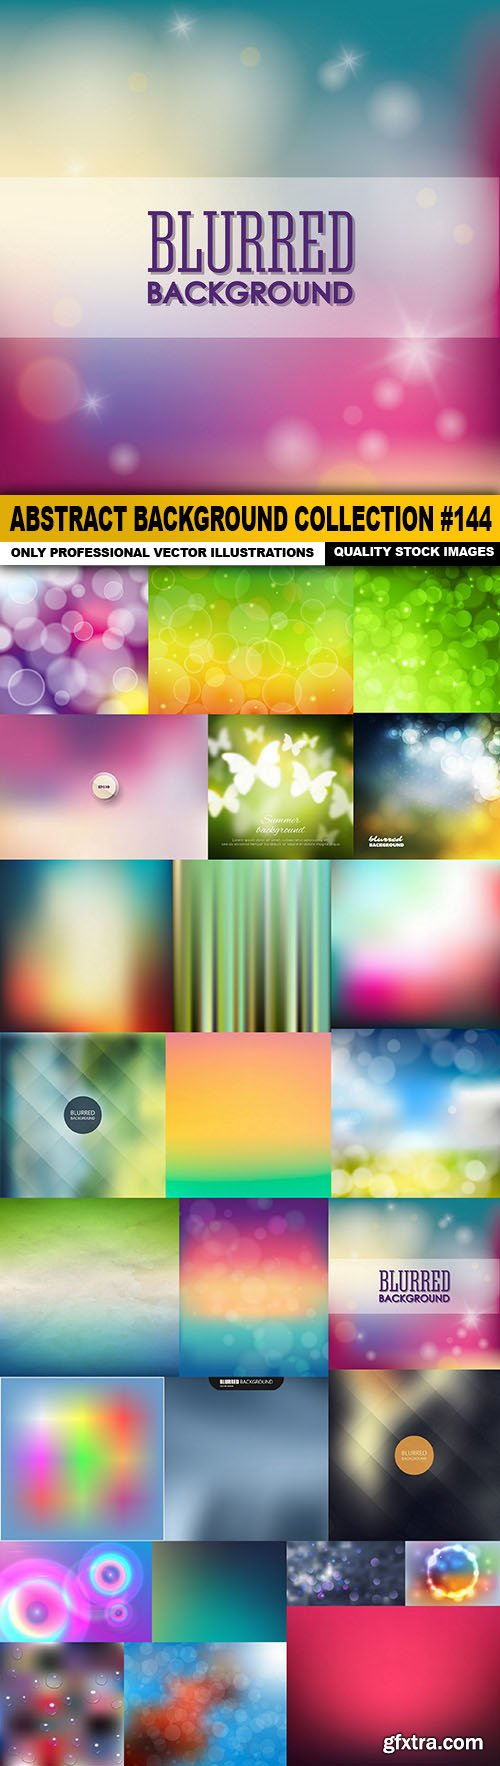 Abstract Background Collection #144 - 25 Vector